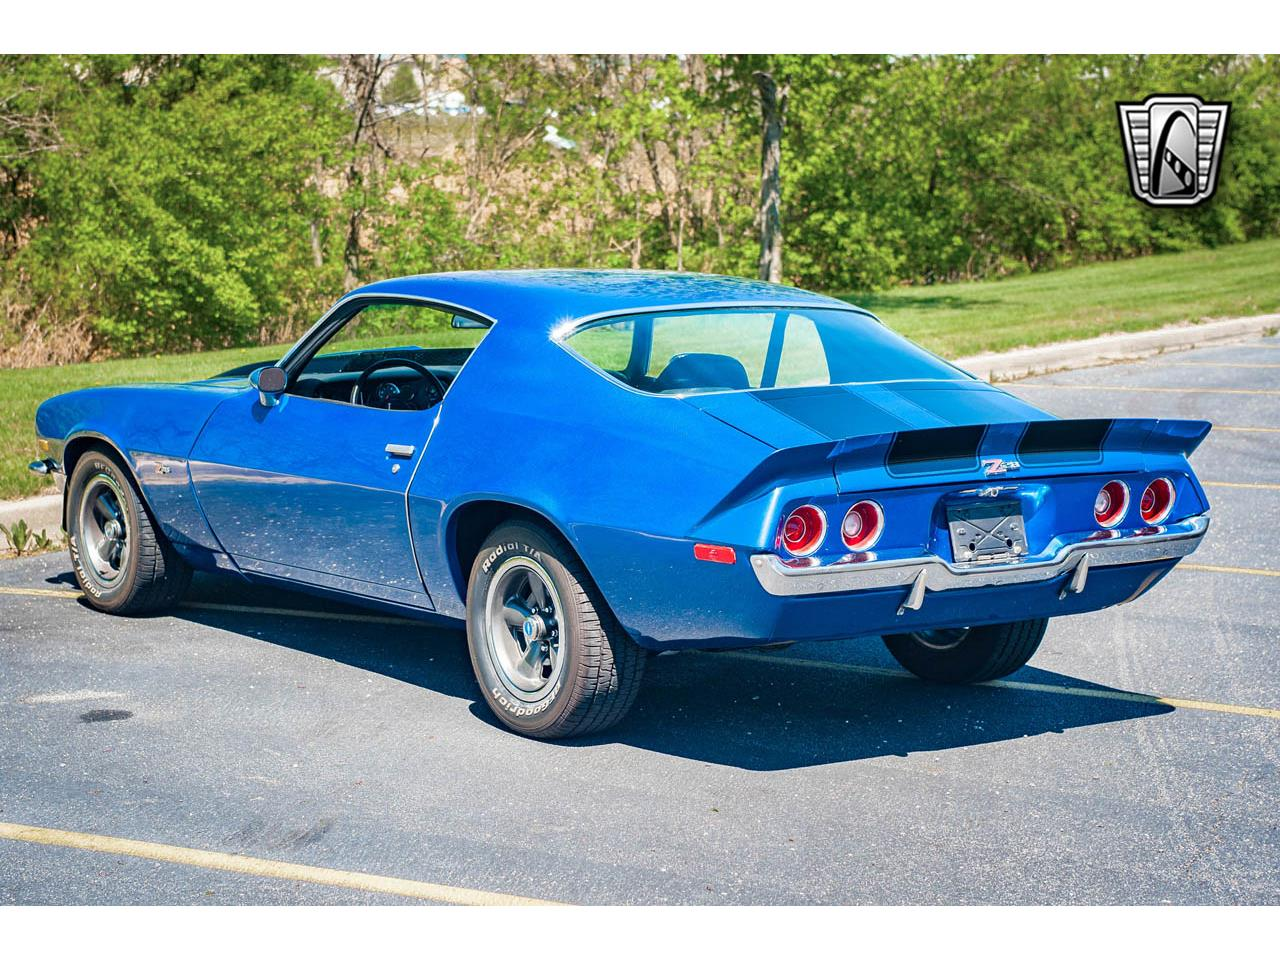 Large Picture of Classic 1971 Chevrolet Camaro - $35,995.00 Offered by Gateway Classic Cars - St. Louis - QB8S